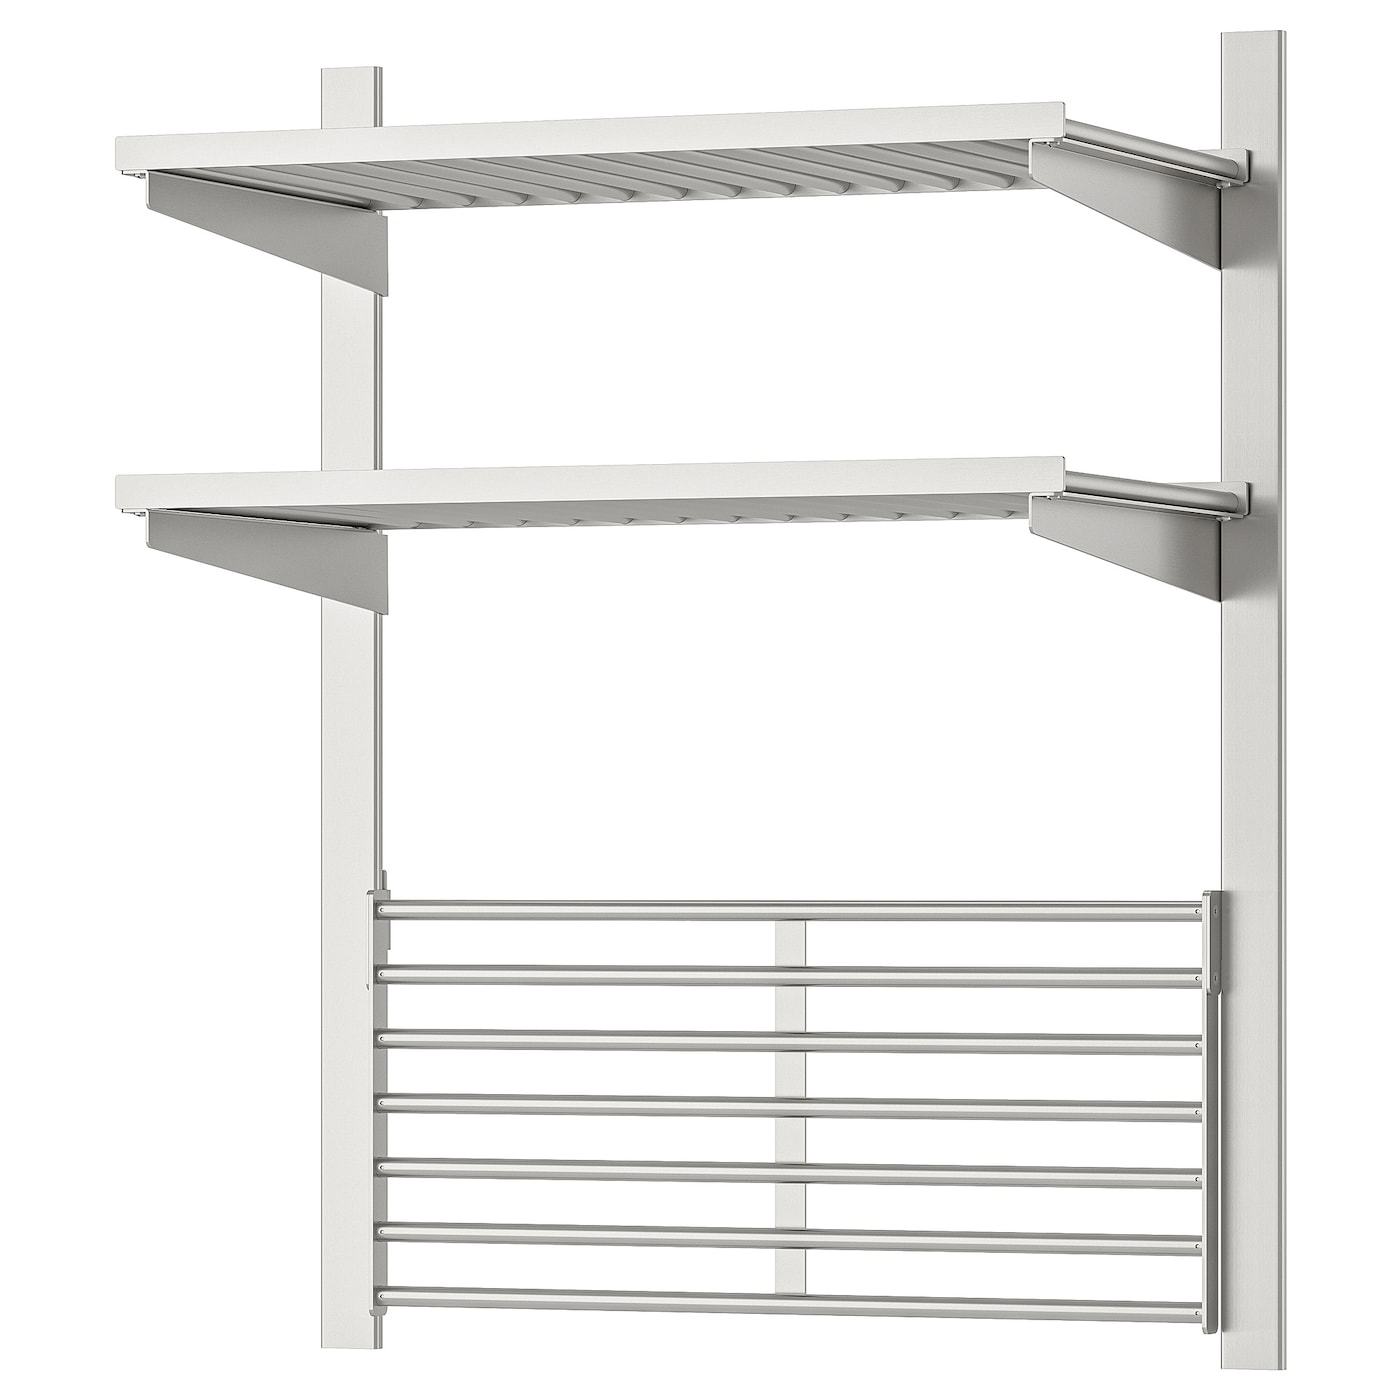 Ikea Kungsfors Suspension Rail With Shelf Wll Grid Saves E On The Worktop